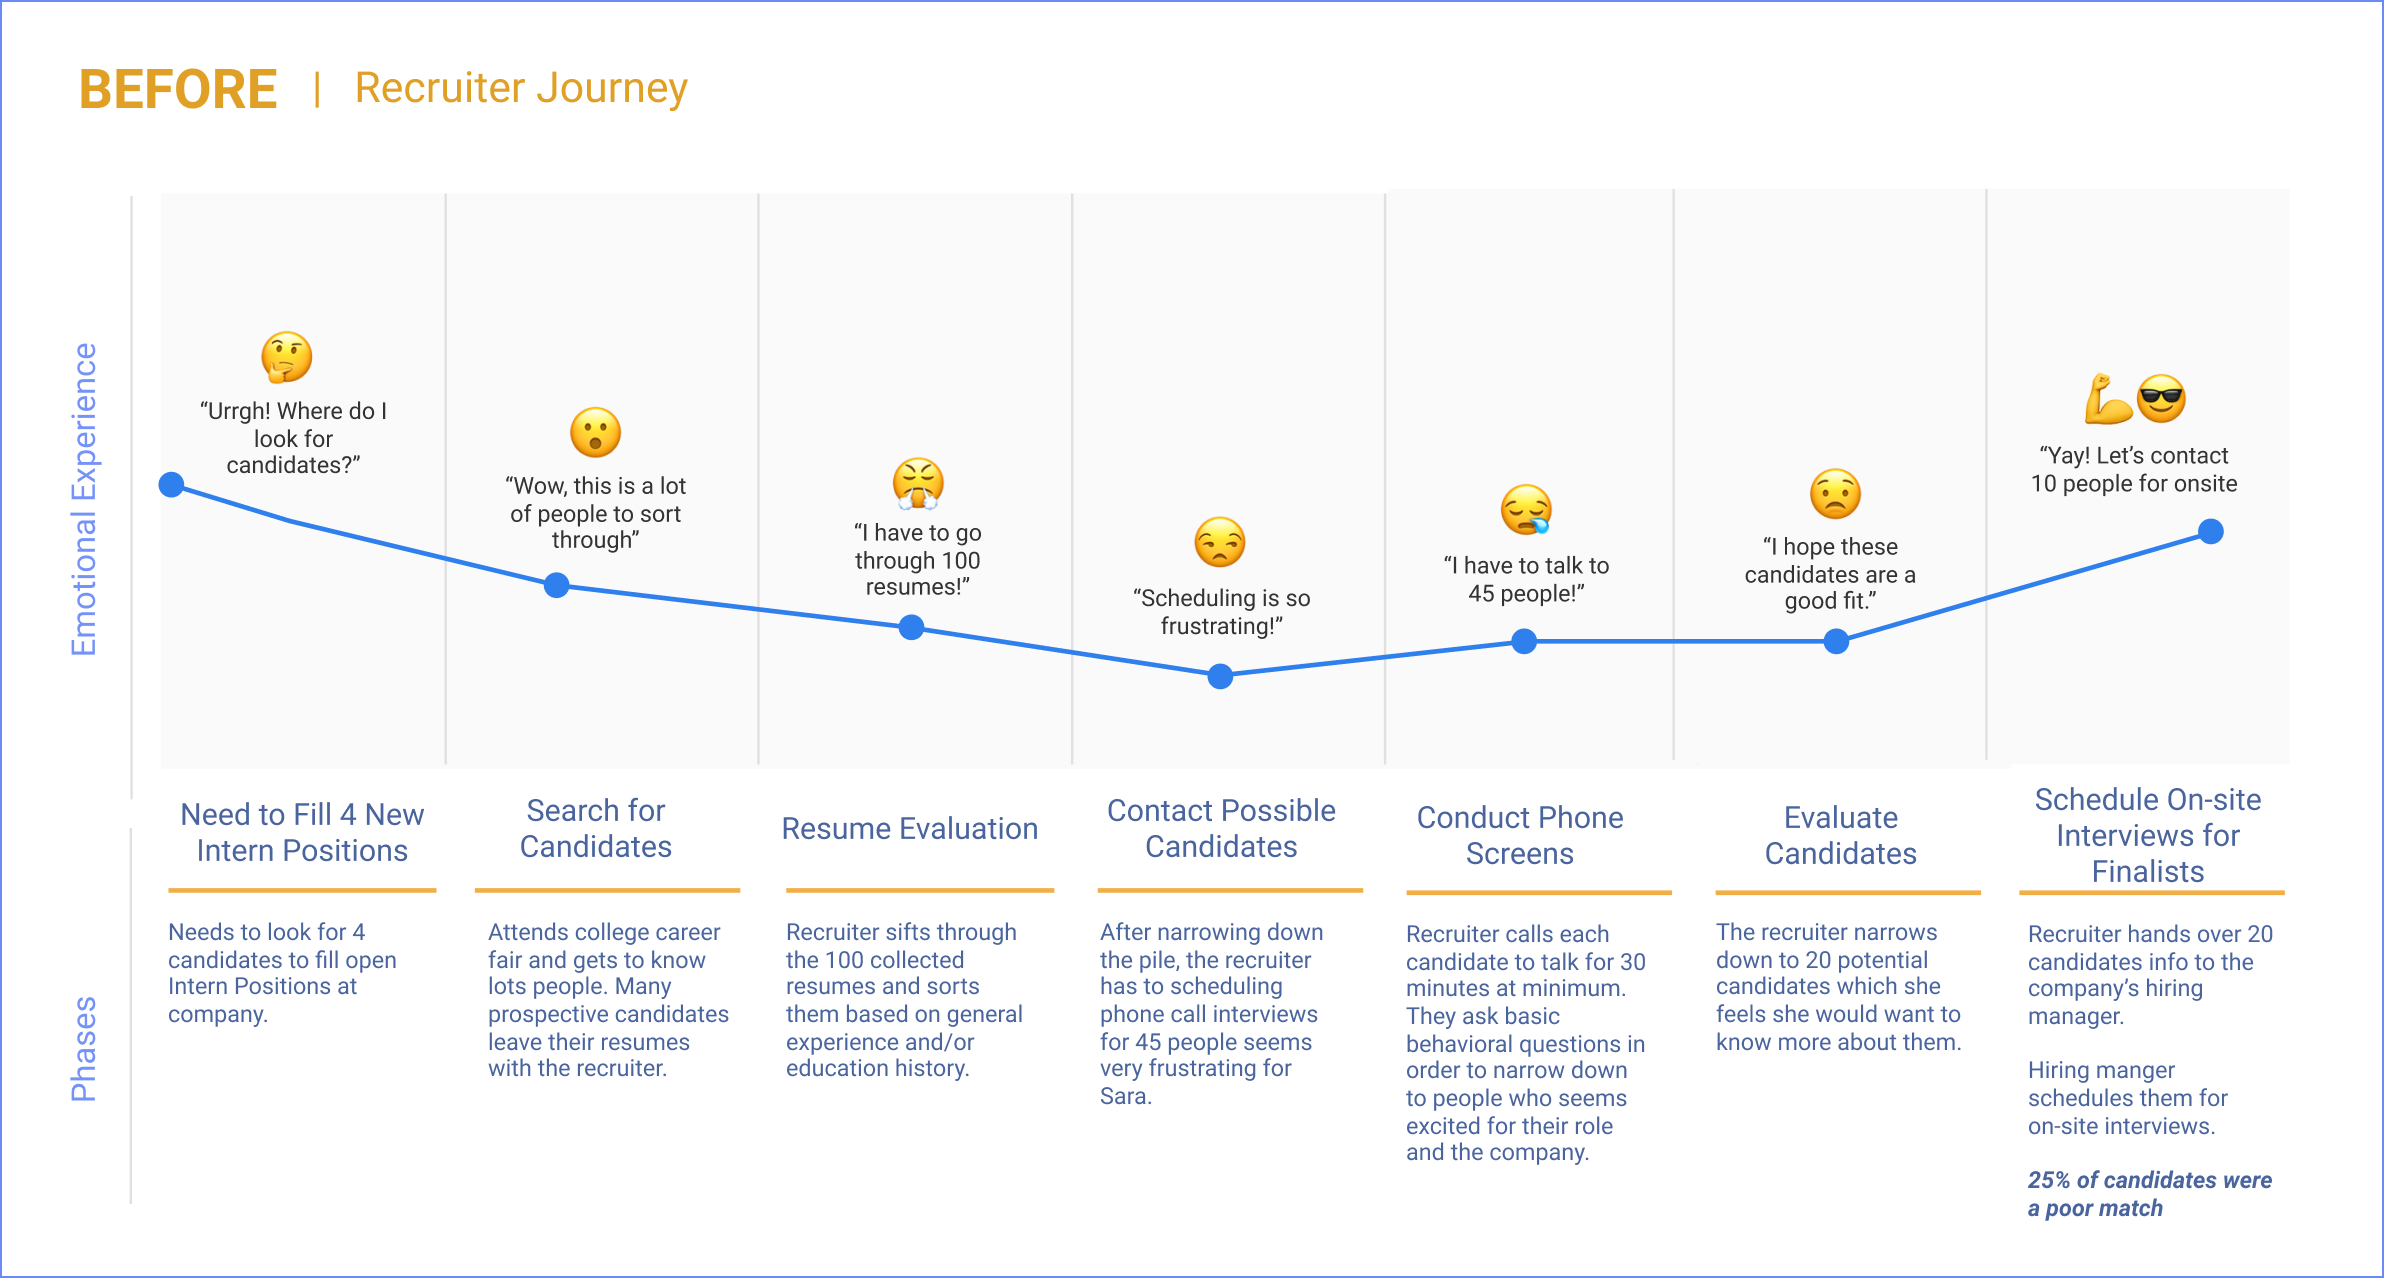 Image of recruiter journey map using traditional recruiting methods